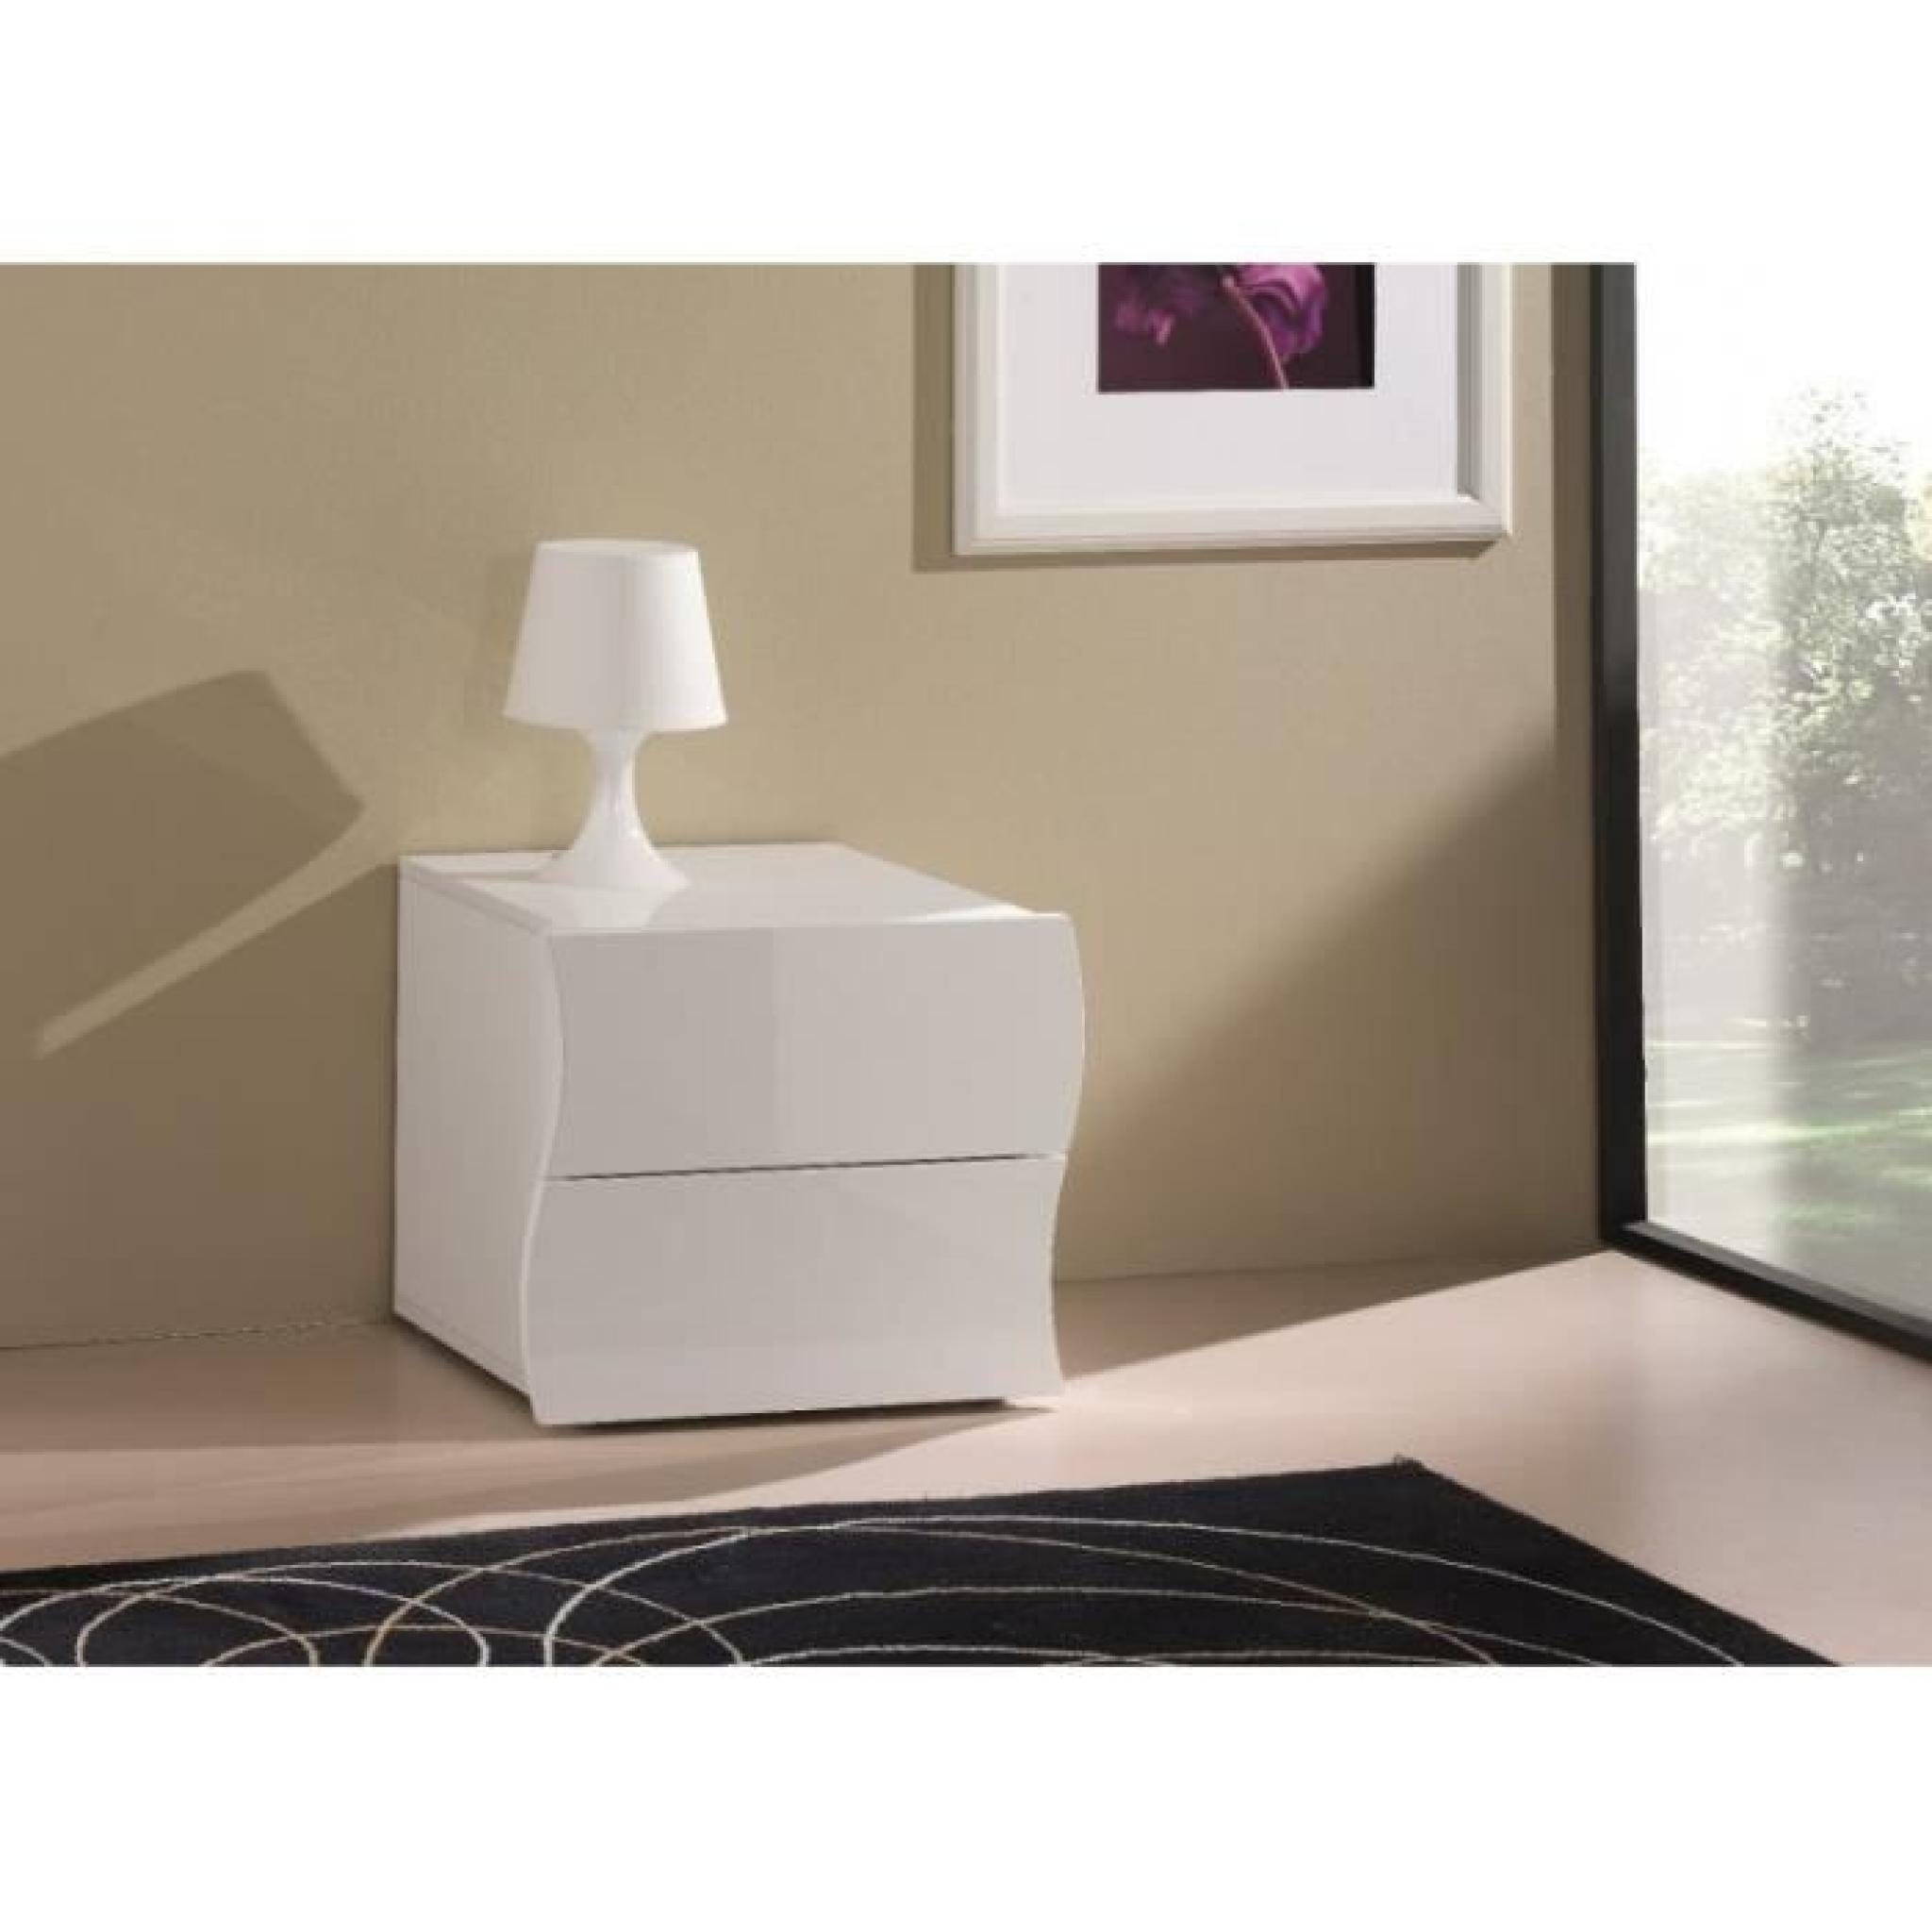 chevet 2 tiroirs onda nanetto blanc brillant achat vente table de chevet pas cher couleur et. Black Bedroom Furniture Sets. Home Design Ideas